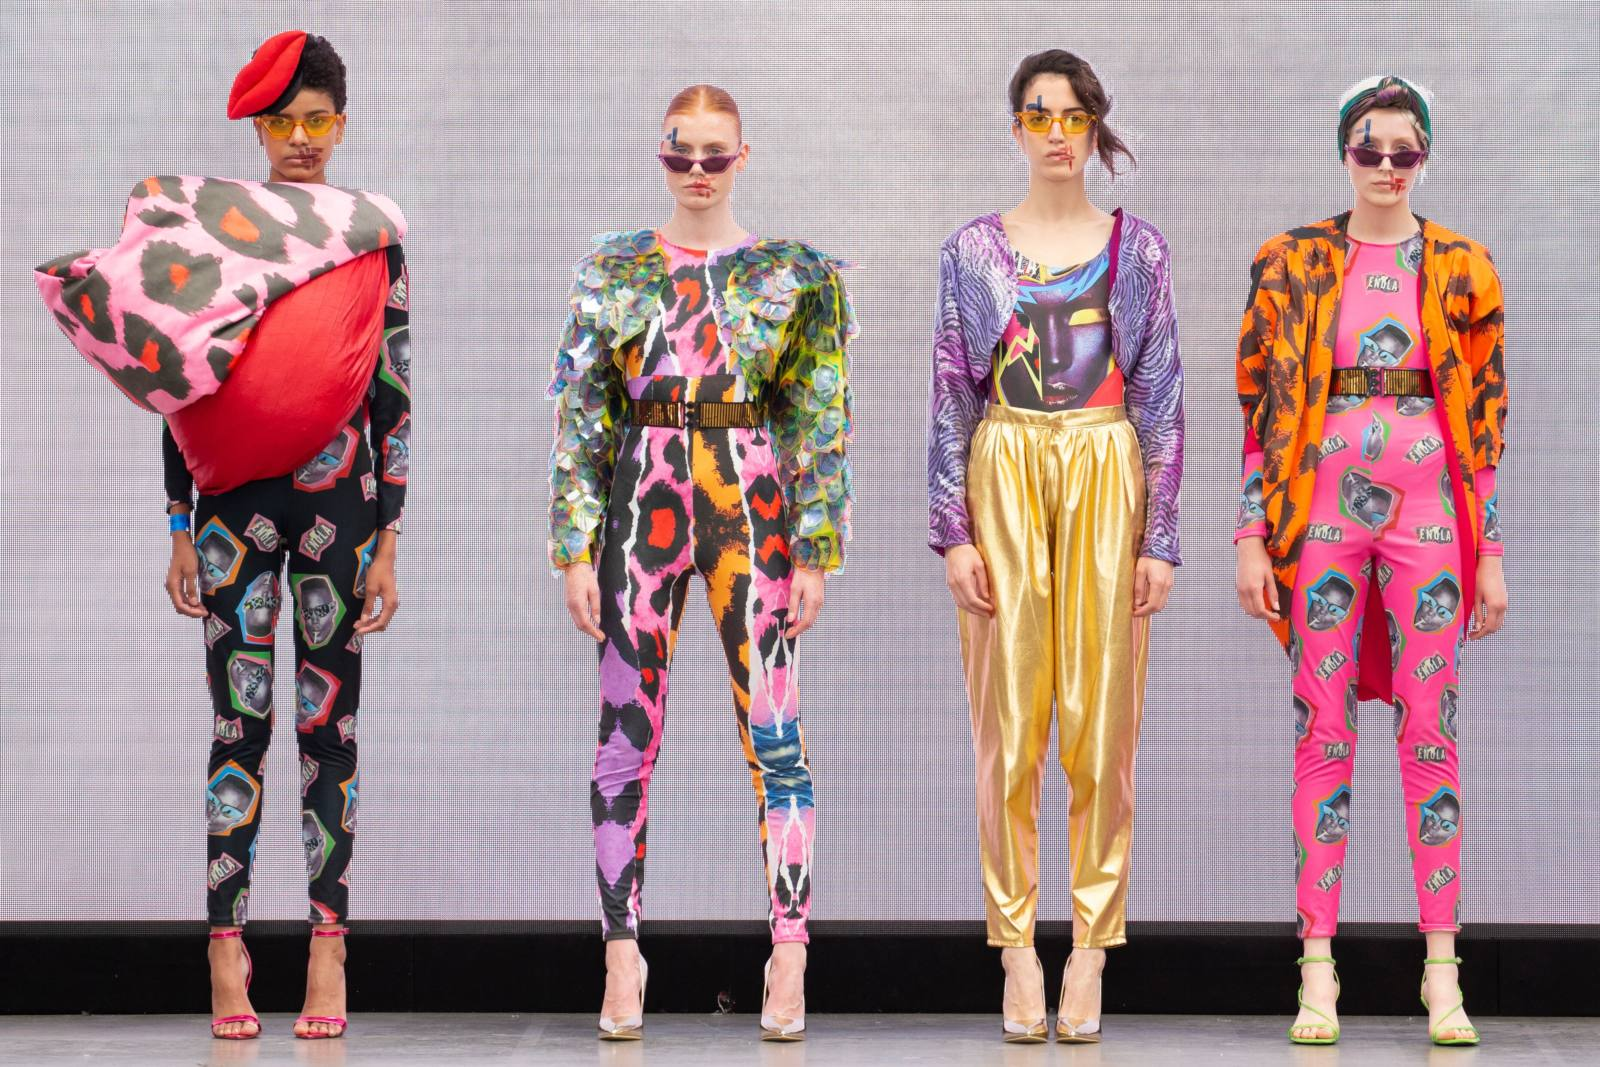 A group of models on the runway for the Liverpool John Moores University Graduate Fashion Week 2019 runway show wearing brightly coloured clothes 1980's style